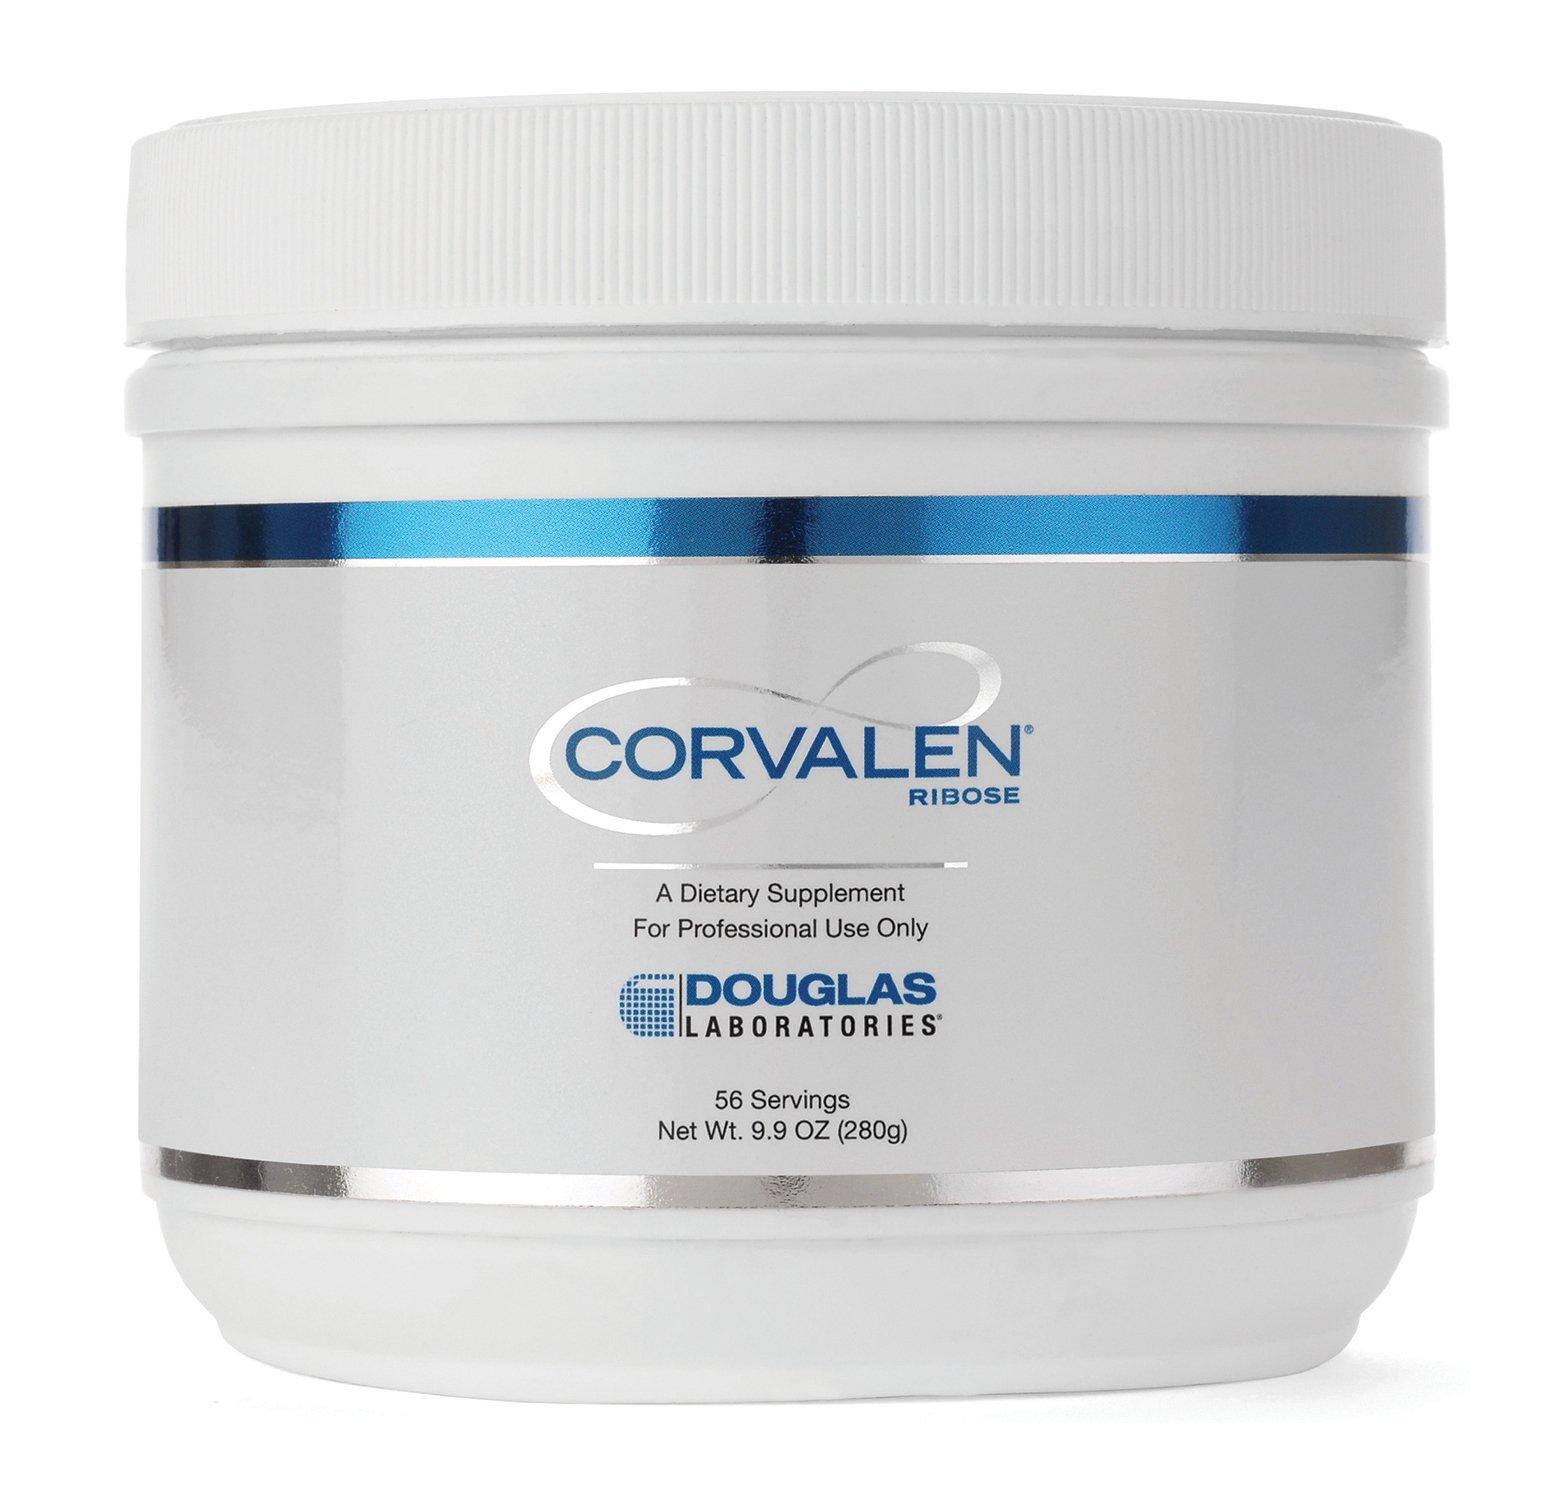 Douglas Laboratories - Corvalen - Supports Cardiovascular Health, Fatigue, Energy Production, and Mitochondrial Function* - 9.9 oz.